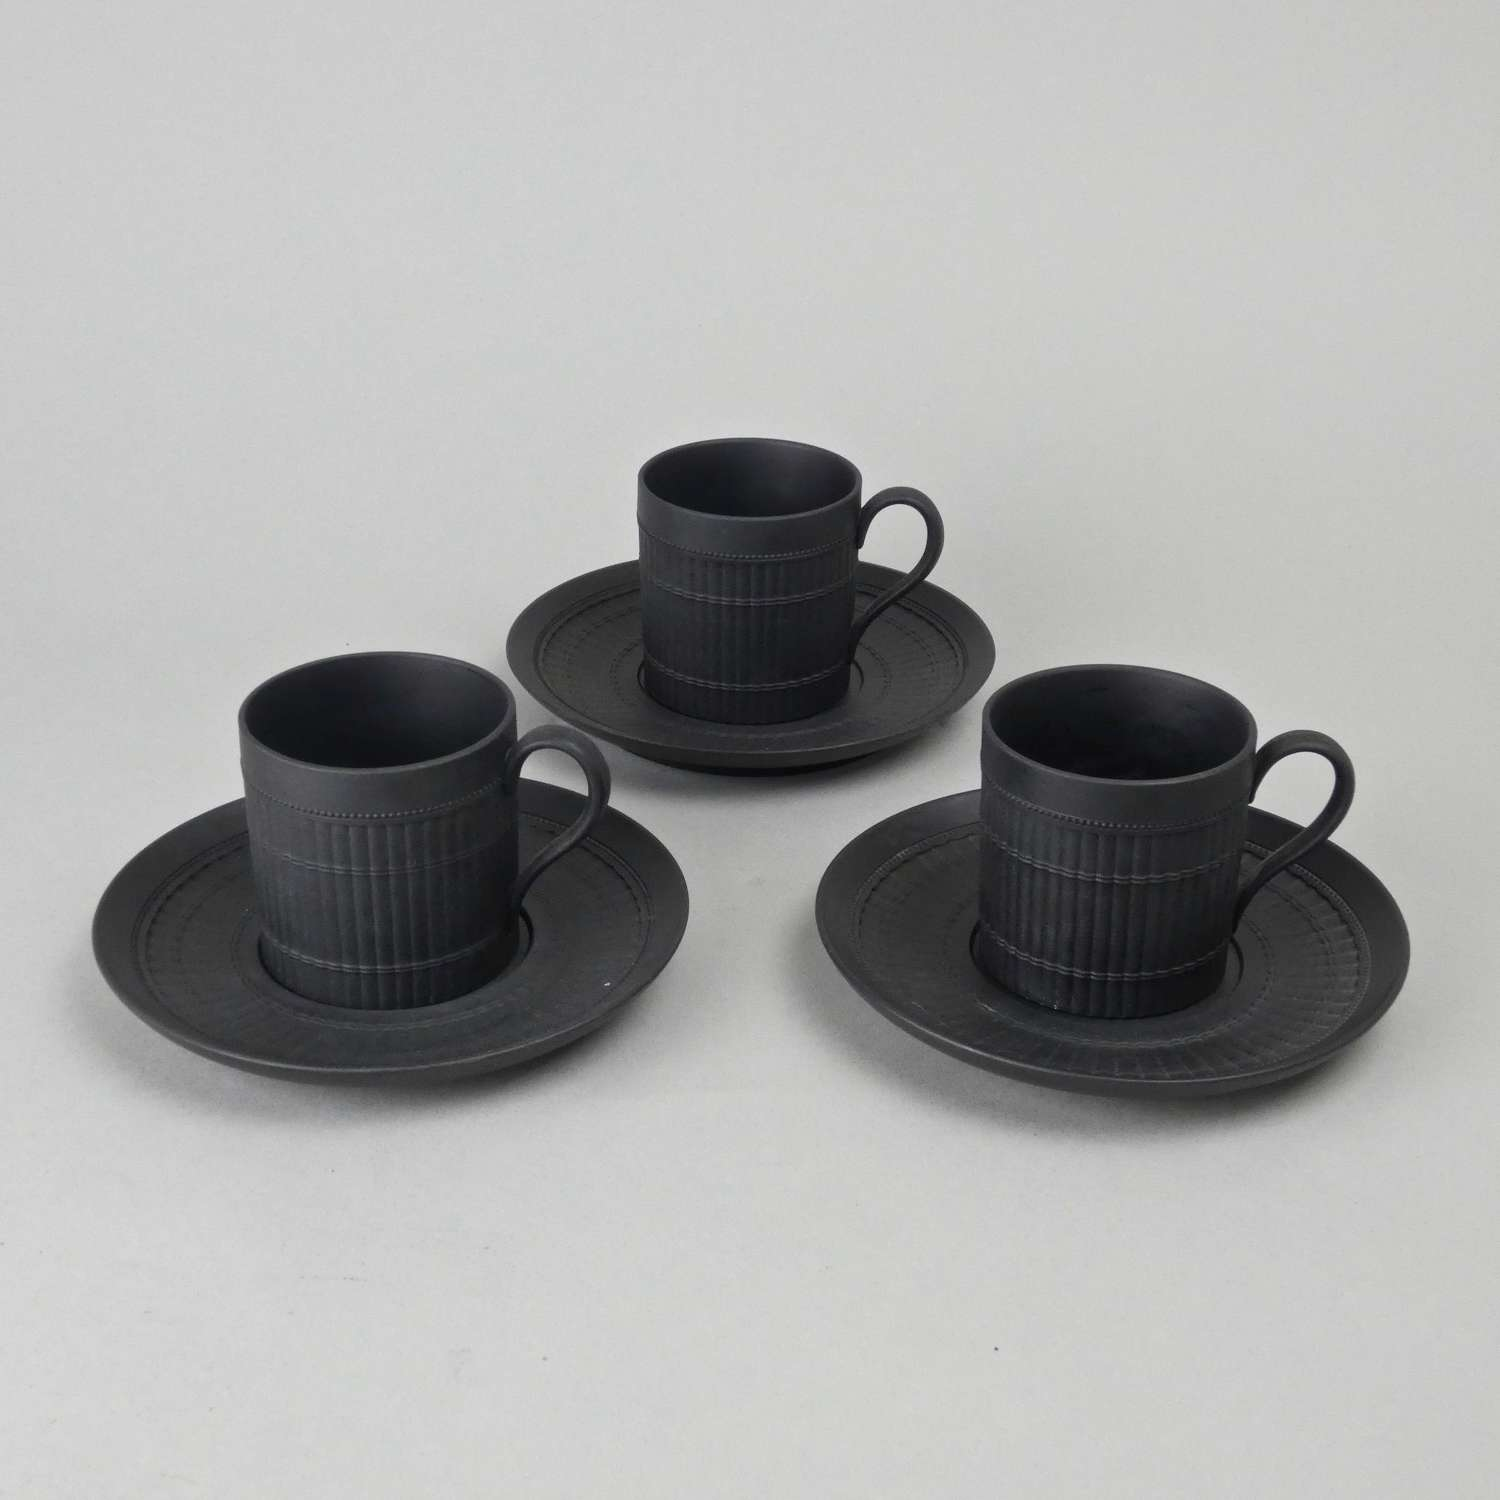 Bamboo design cups and saucers